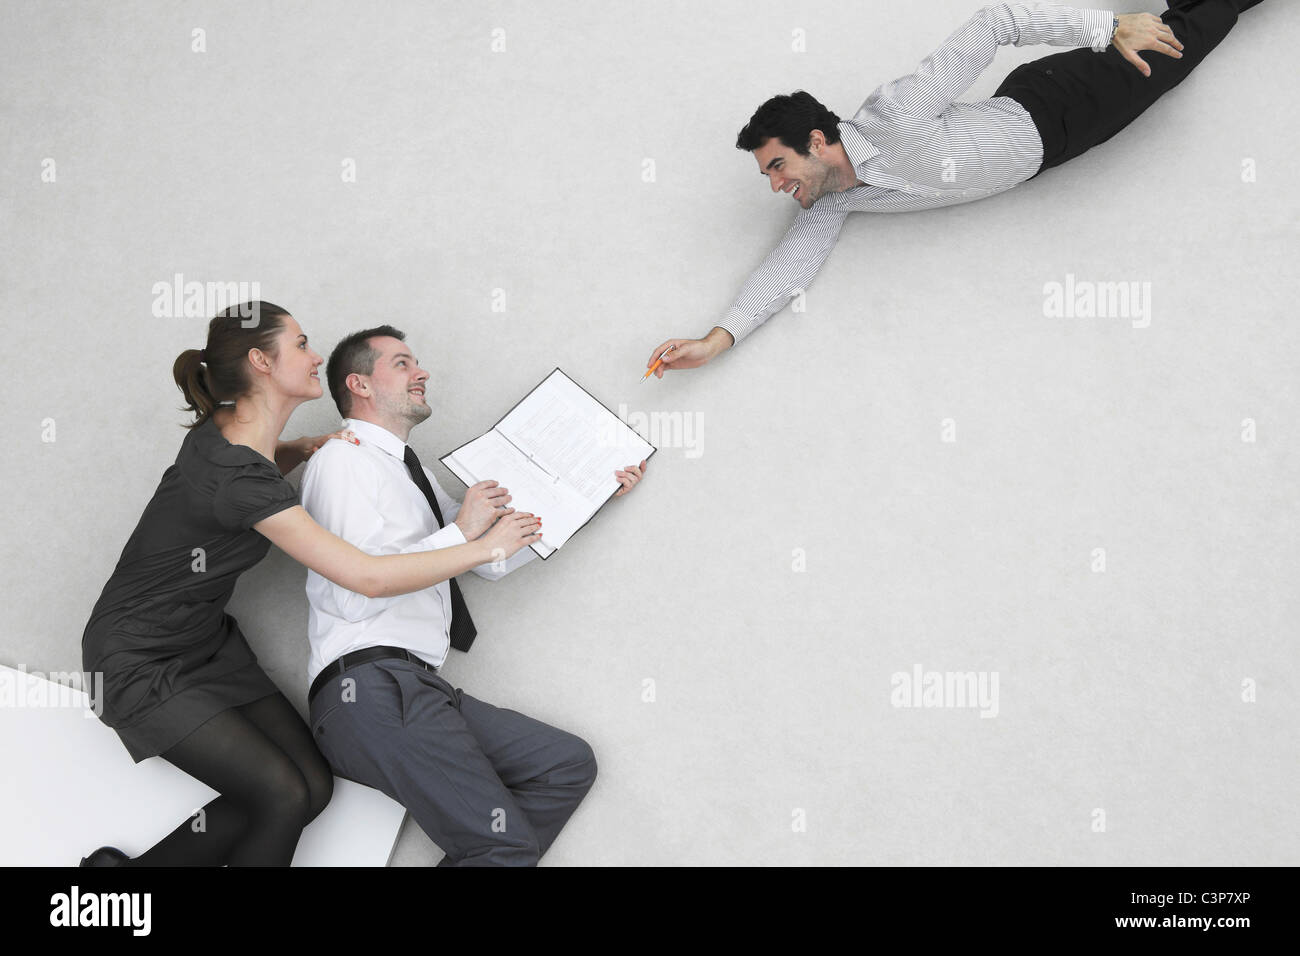 Three business people, businessman signing contract, elevated view - Stock Image